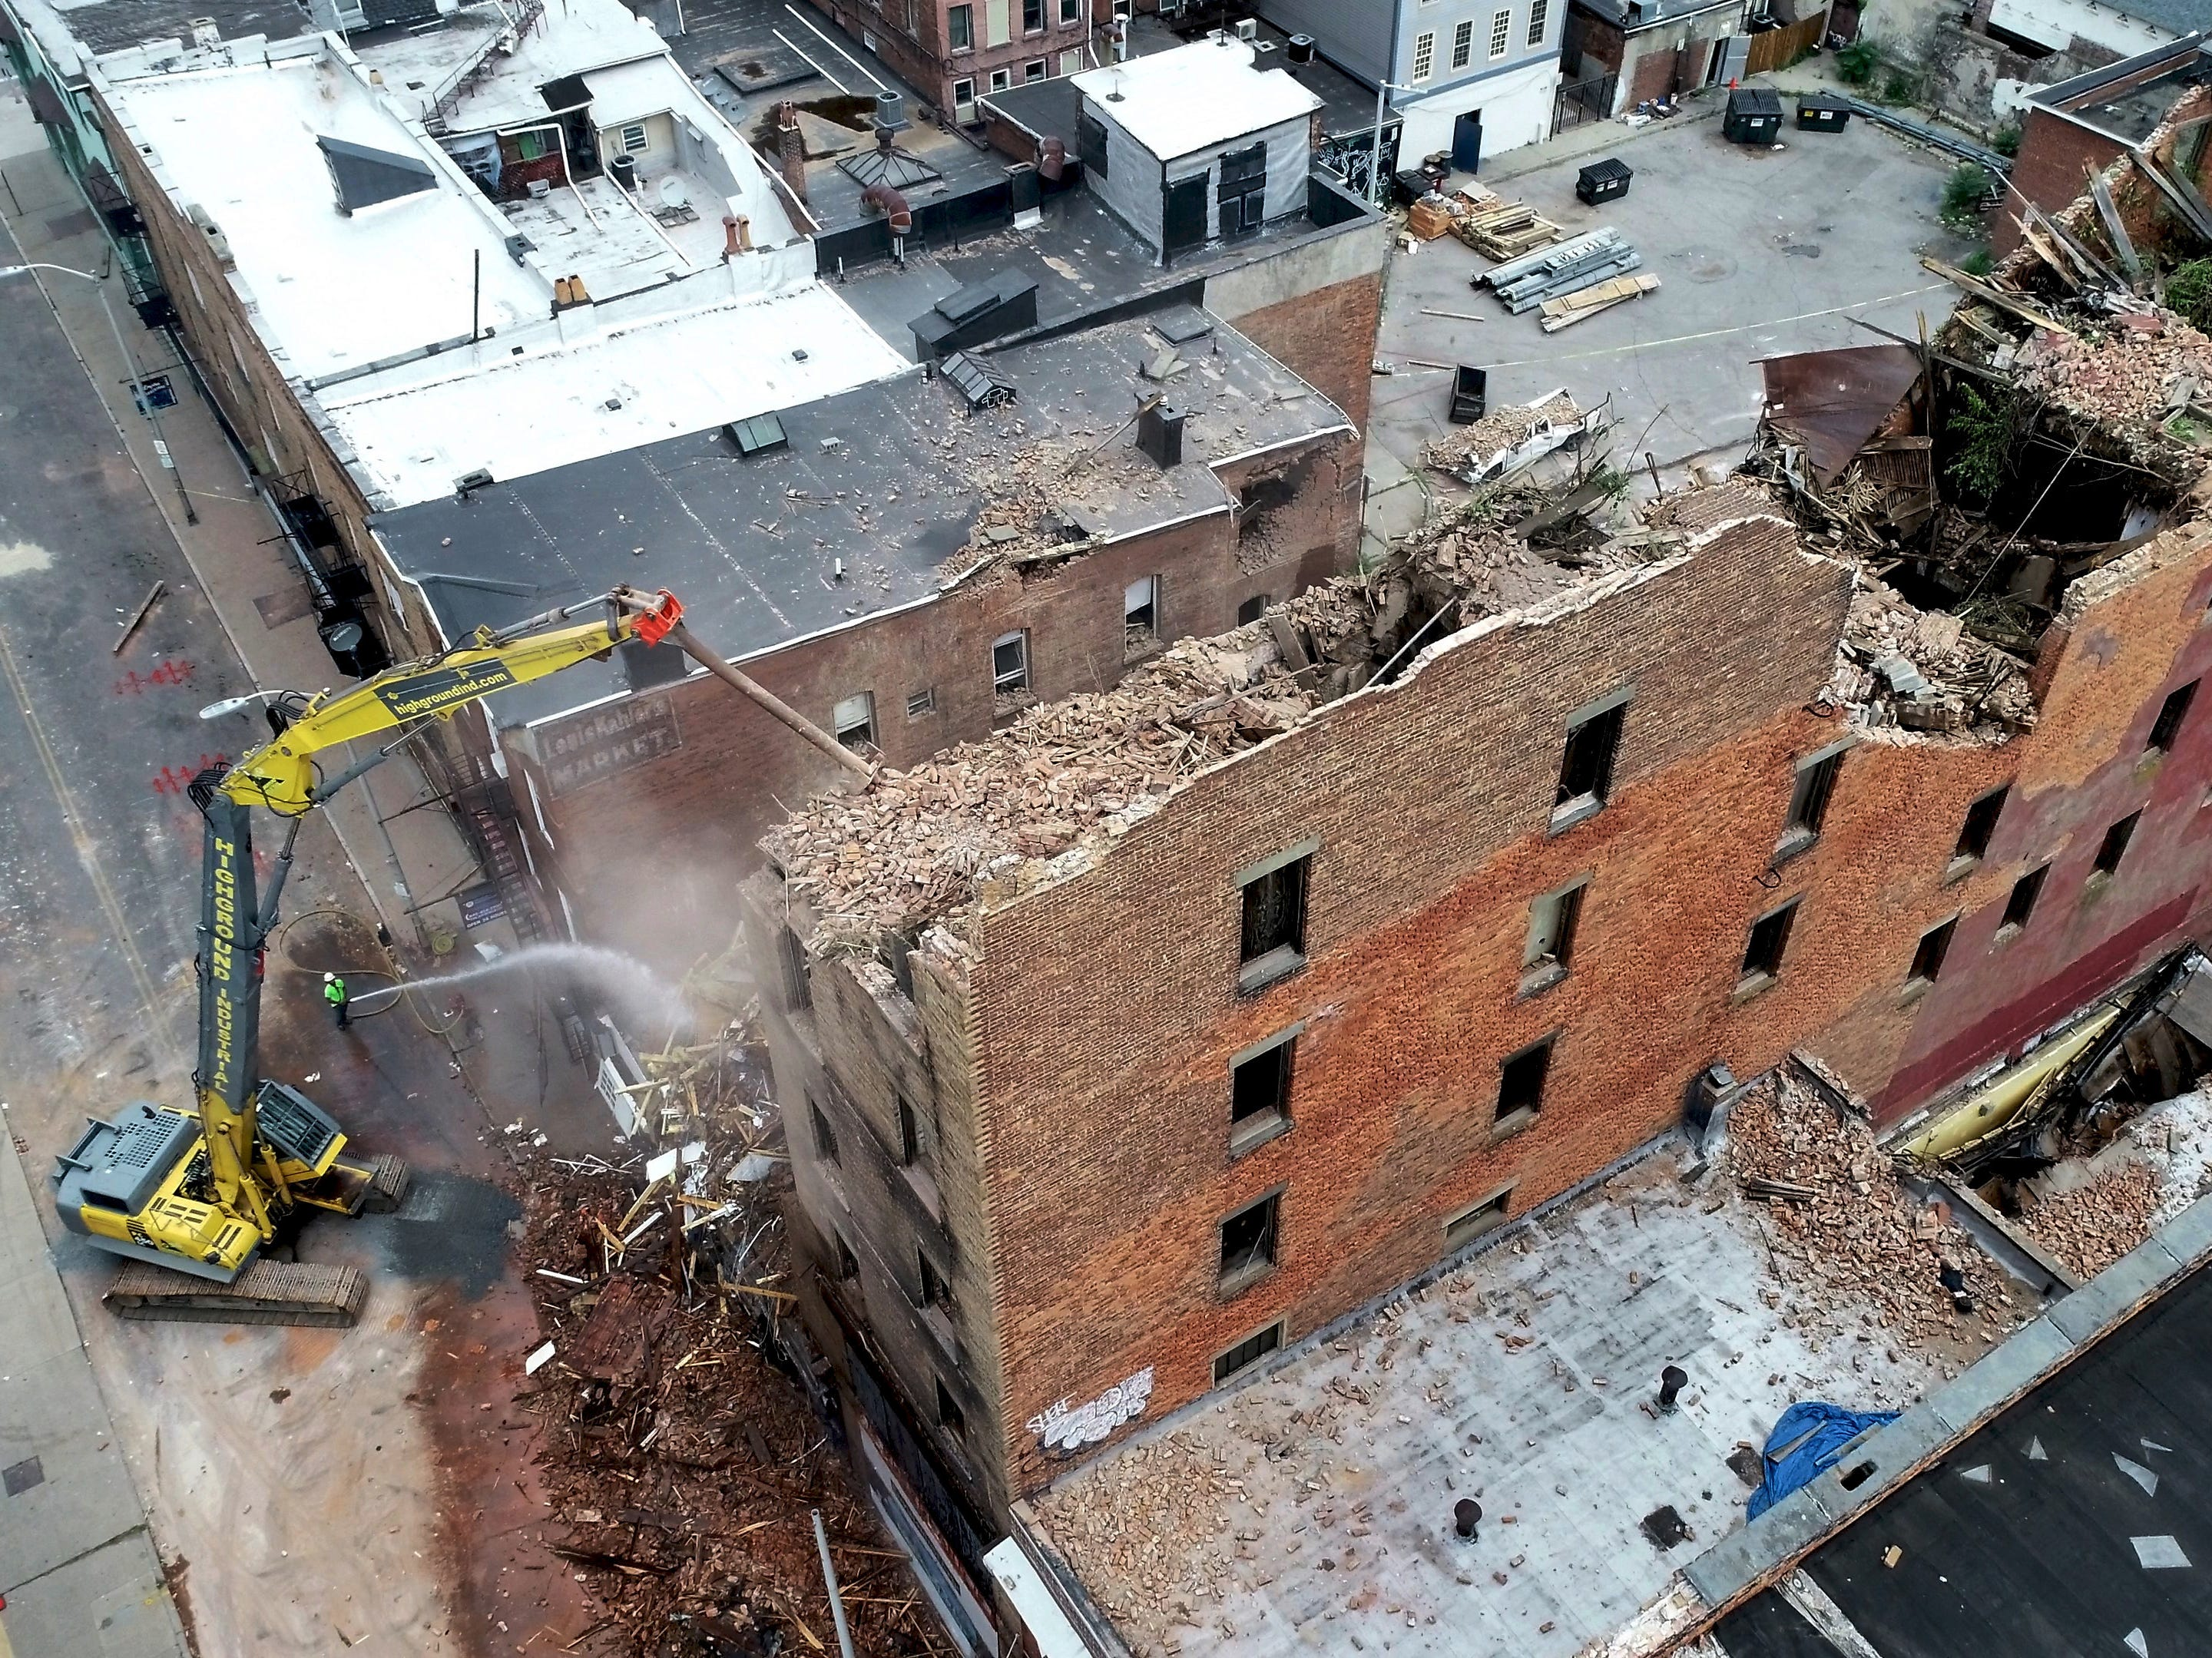 Demolition crews work to take down a collapsed building at 17 Academy St. in Poughkeepsie June 20, 2018.